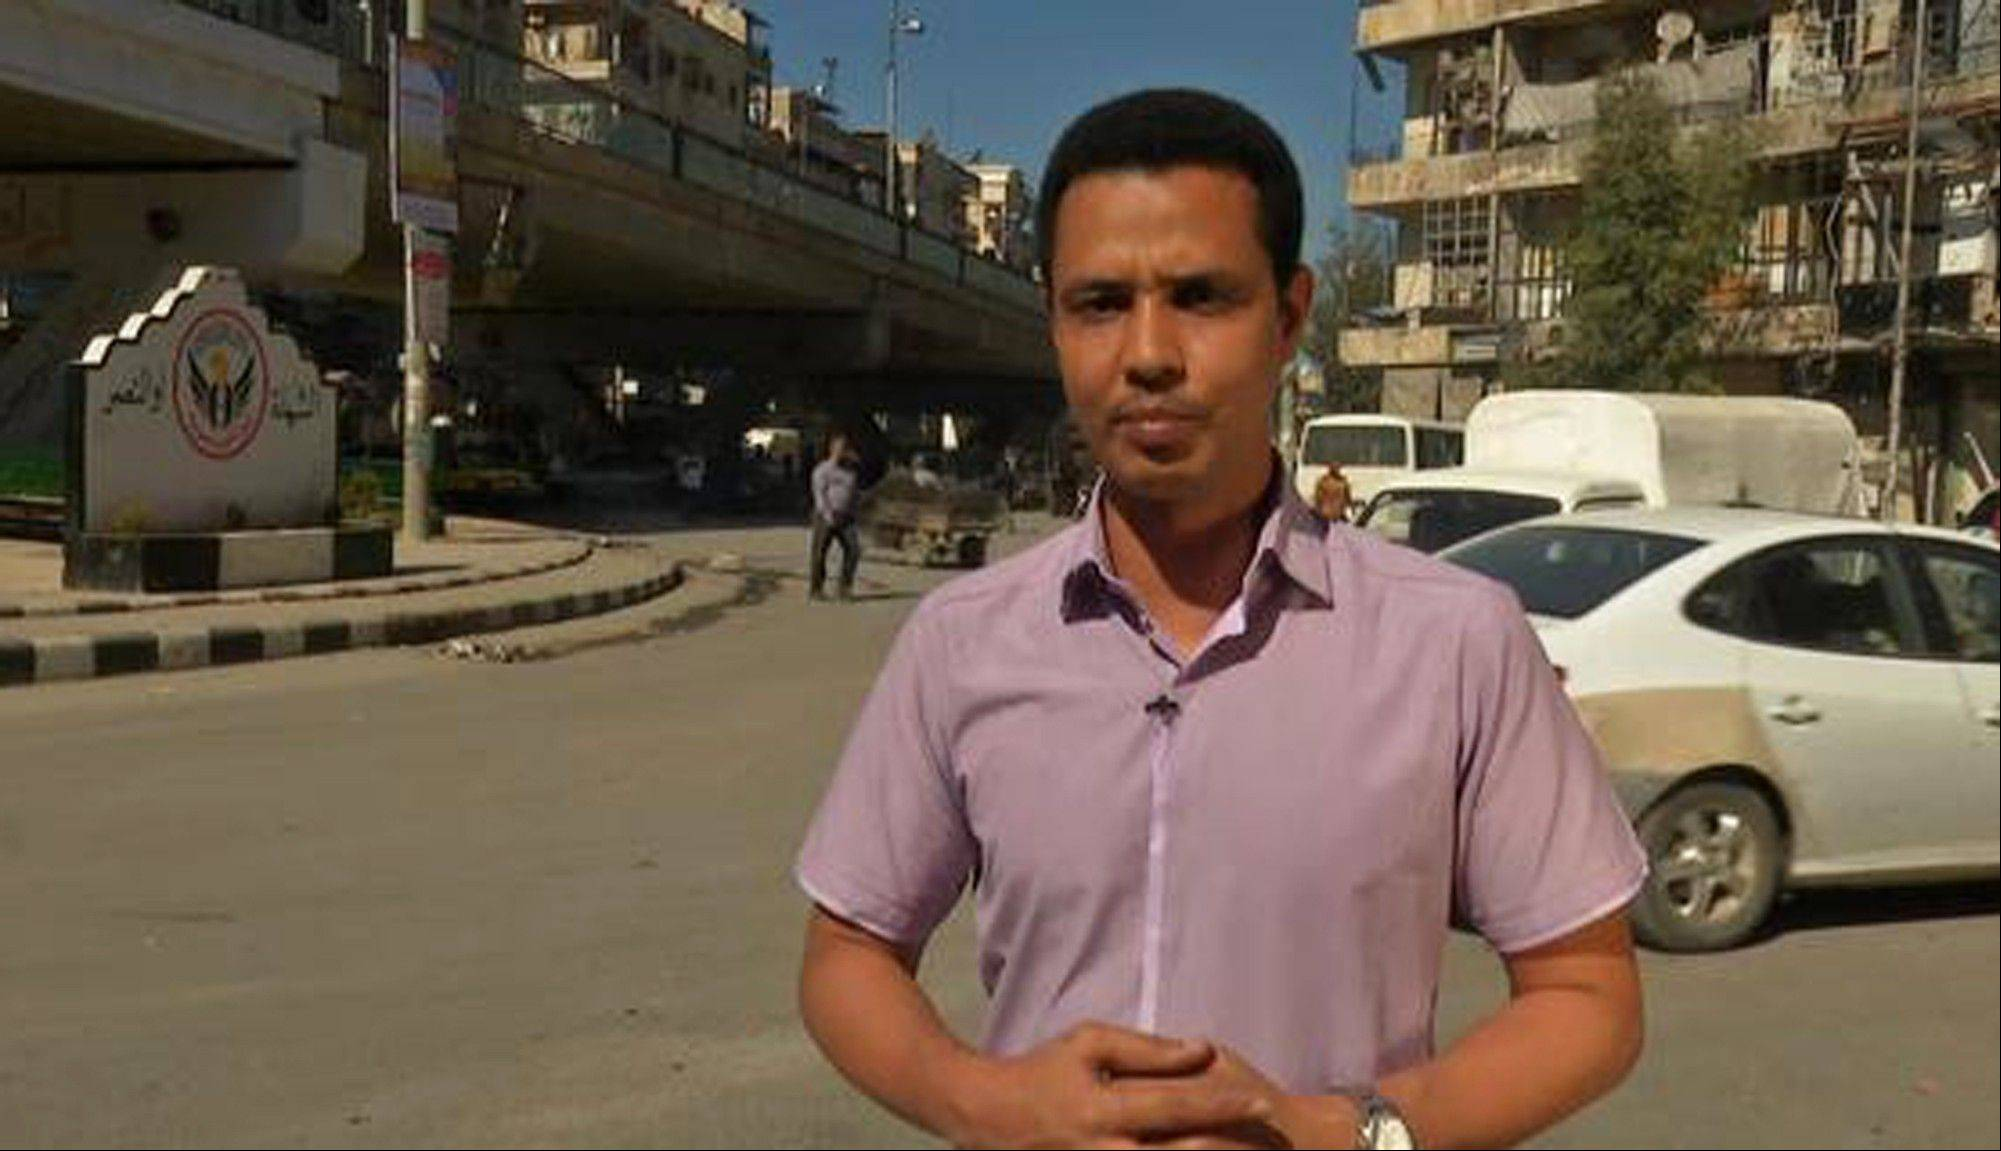 Ishak Moctar, a Mauritanian national, reports from Syria. Sky News website reports Moctar has been missing since October.